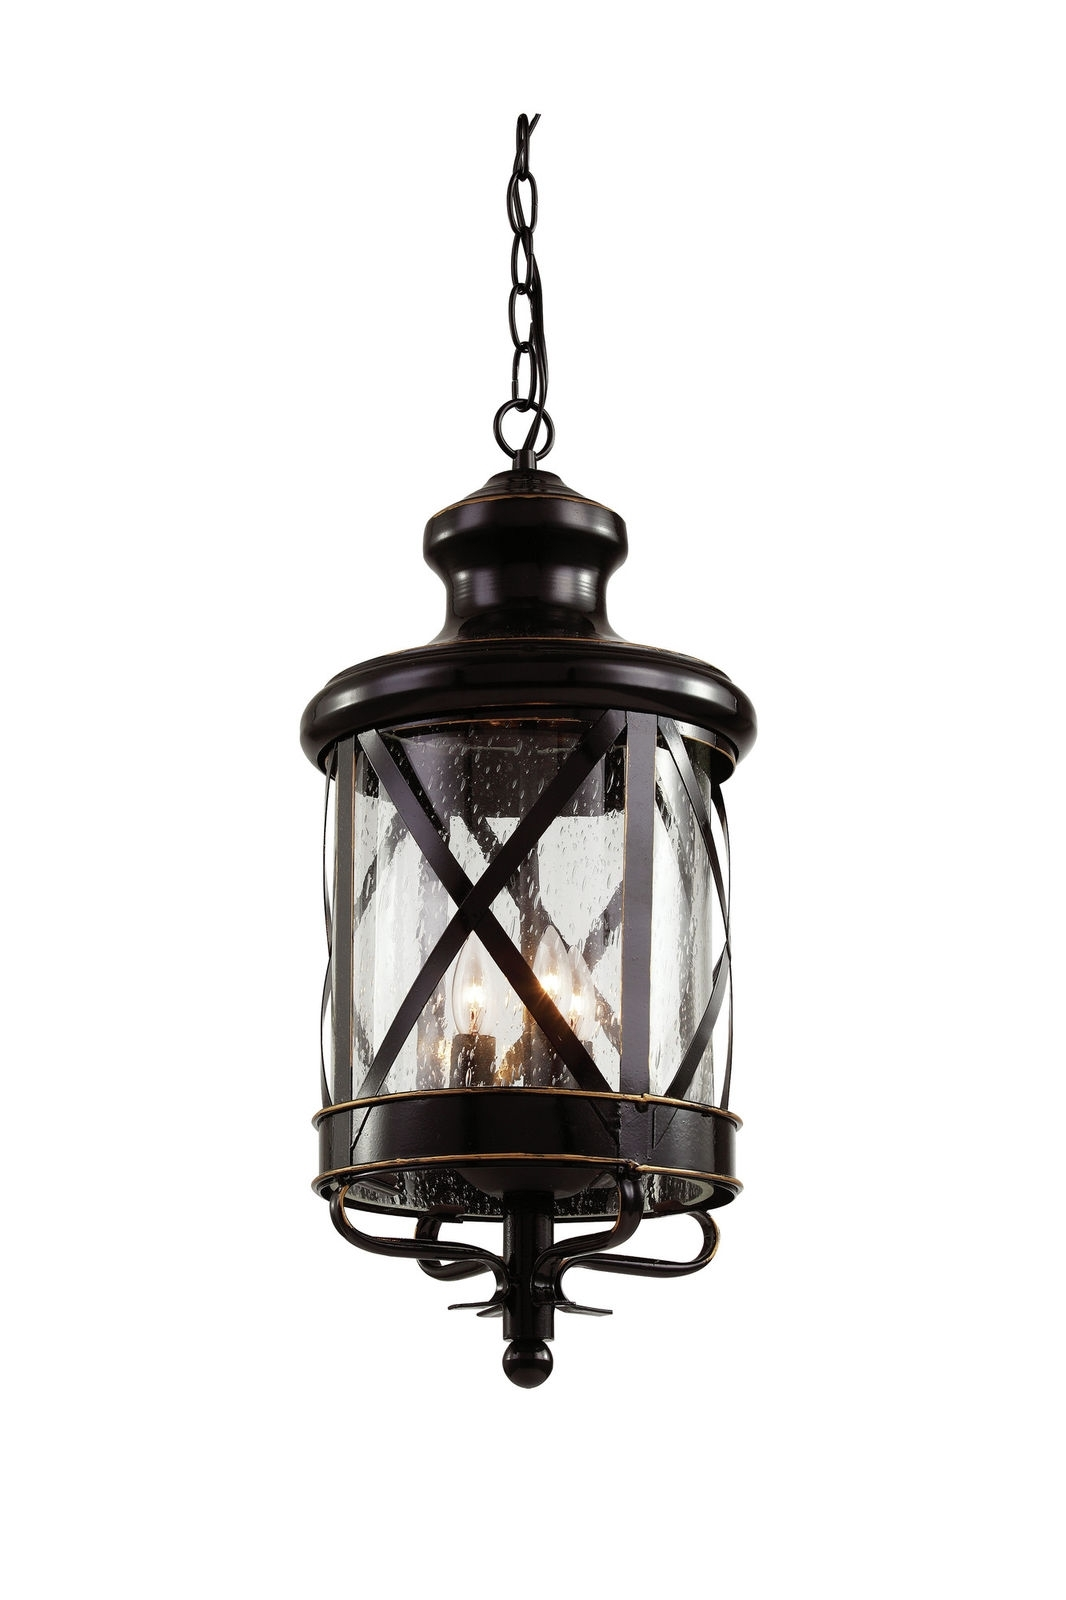 Trans Globe Lighting 5124 Rob Outdoor Hanging Light In Rubbed Oil Inside Outdoor Hanging Oil Lanterns (#14 of 15)